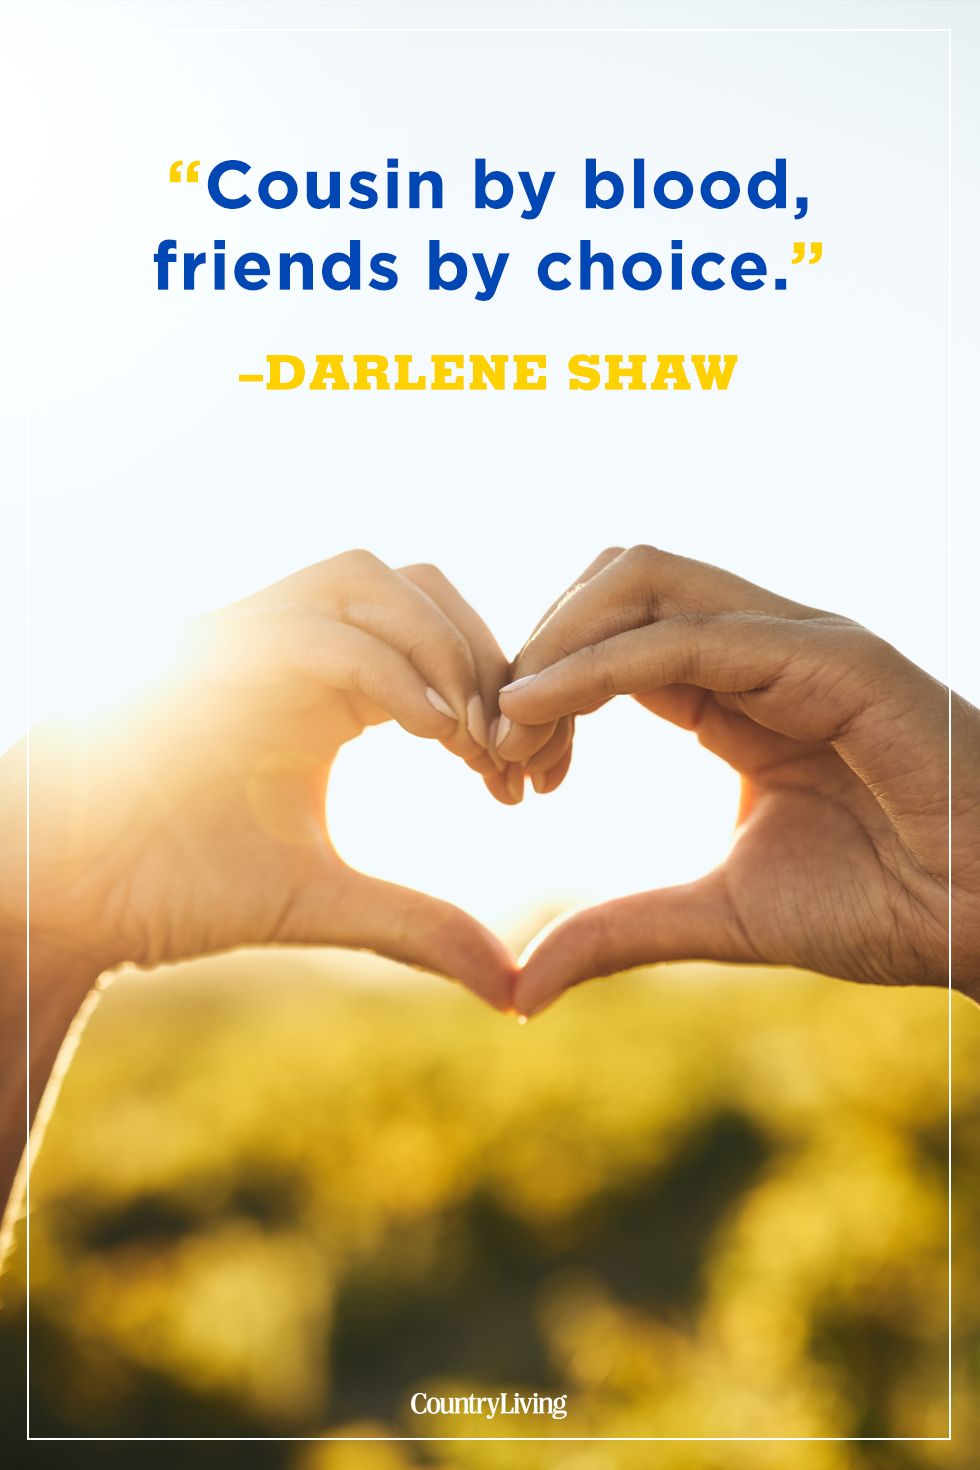 Quotes About Cousins Bonding Tagalog Inspiring Quotes